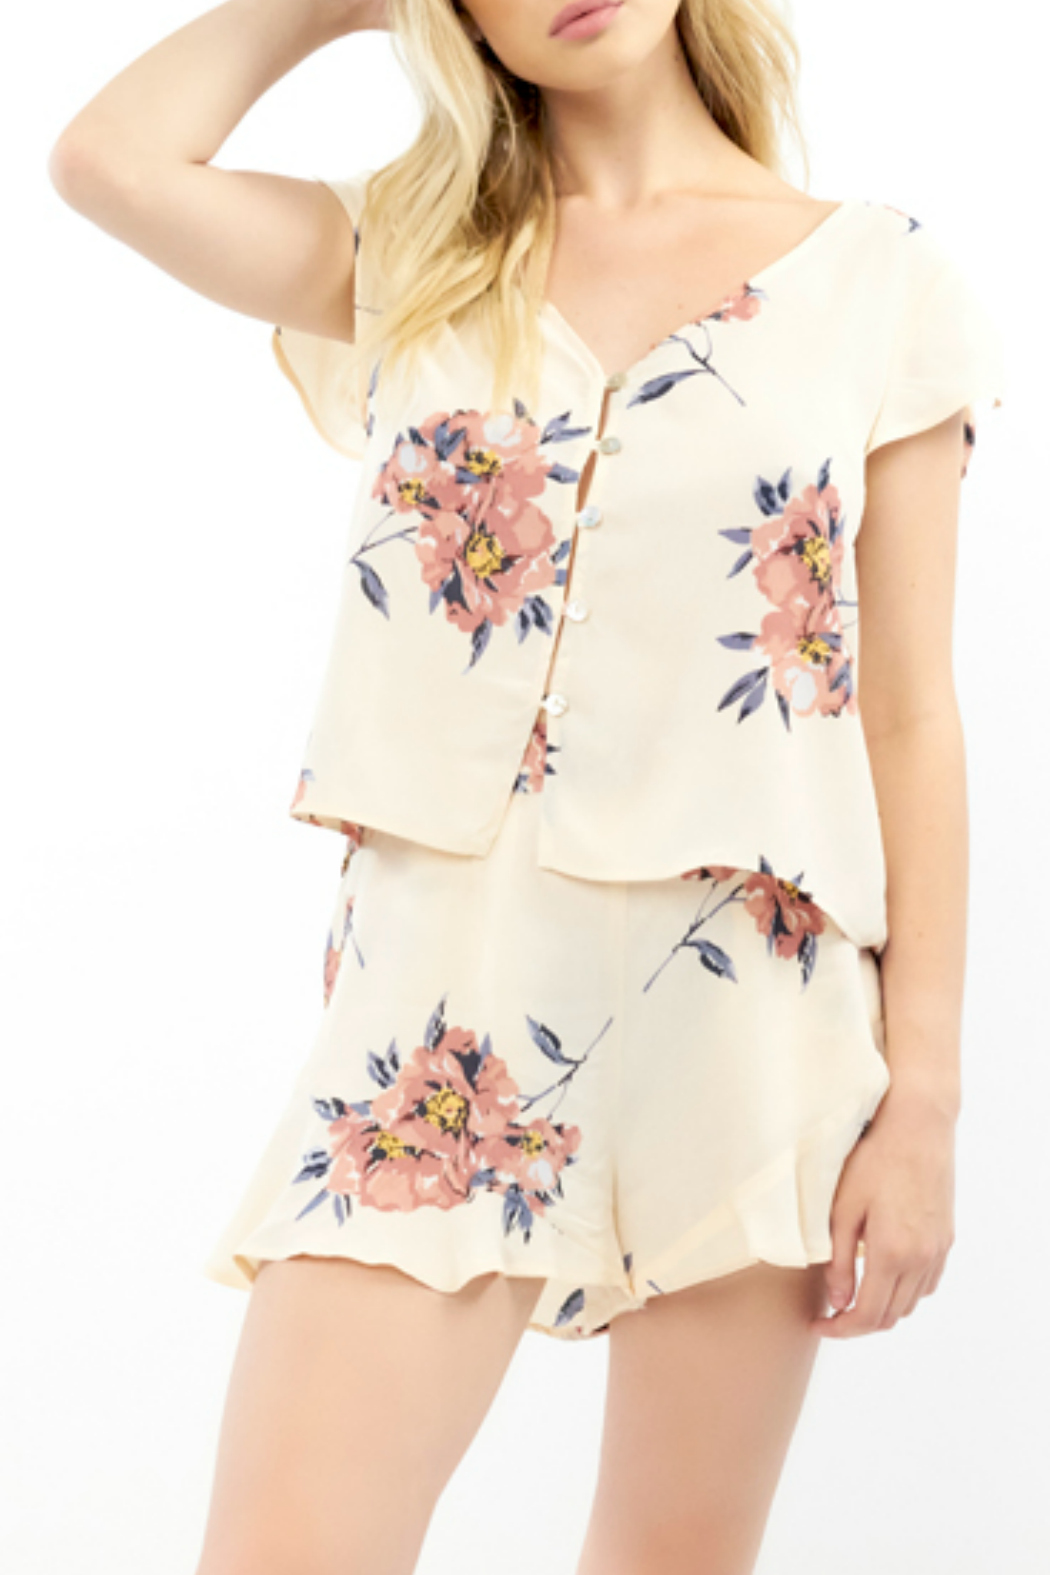 Saltwater Luxe Blossom Print S/S Button front Top - Main Image